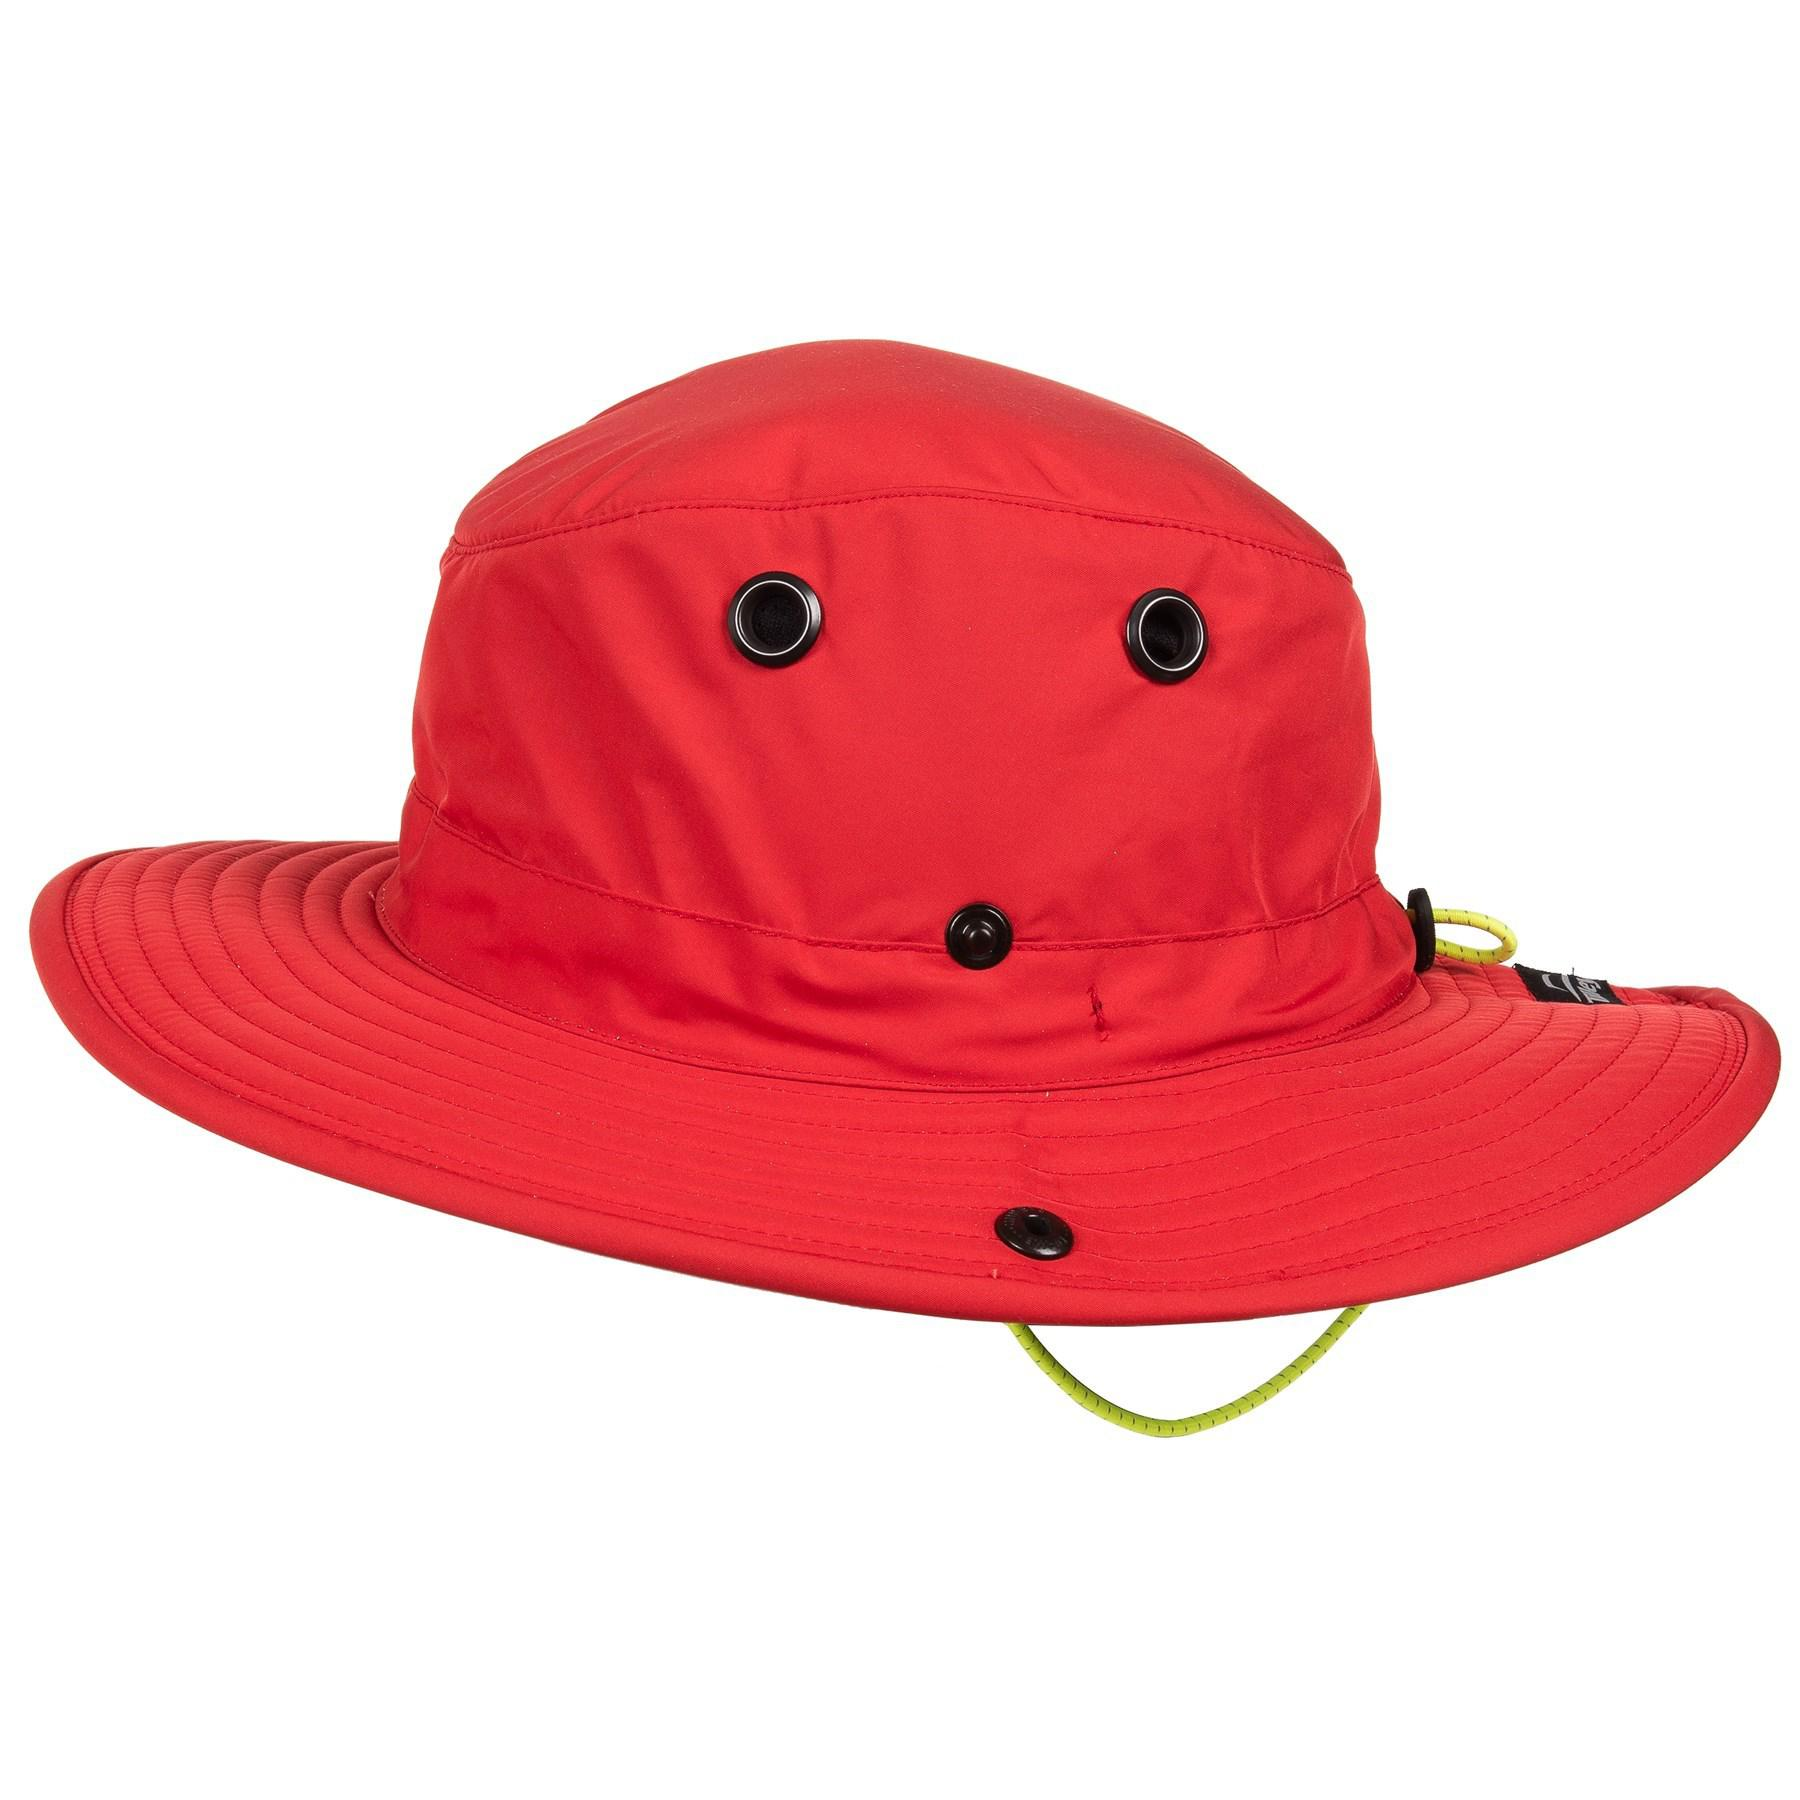 93411734aa8 Lyst - Tilley Paddlers Hat in Red for Men